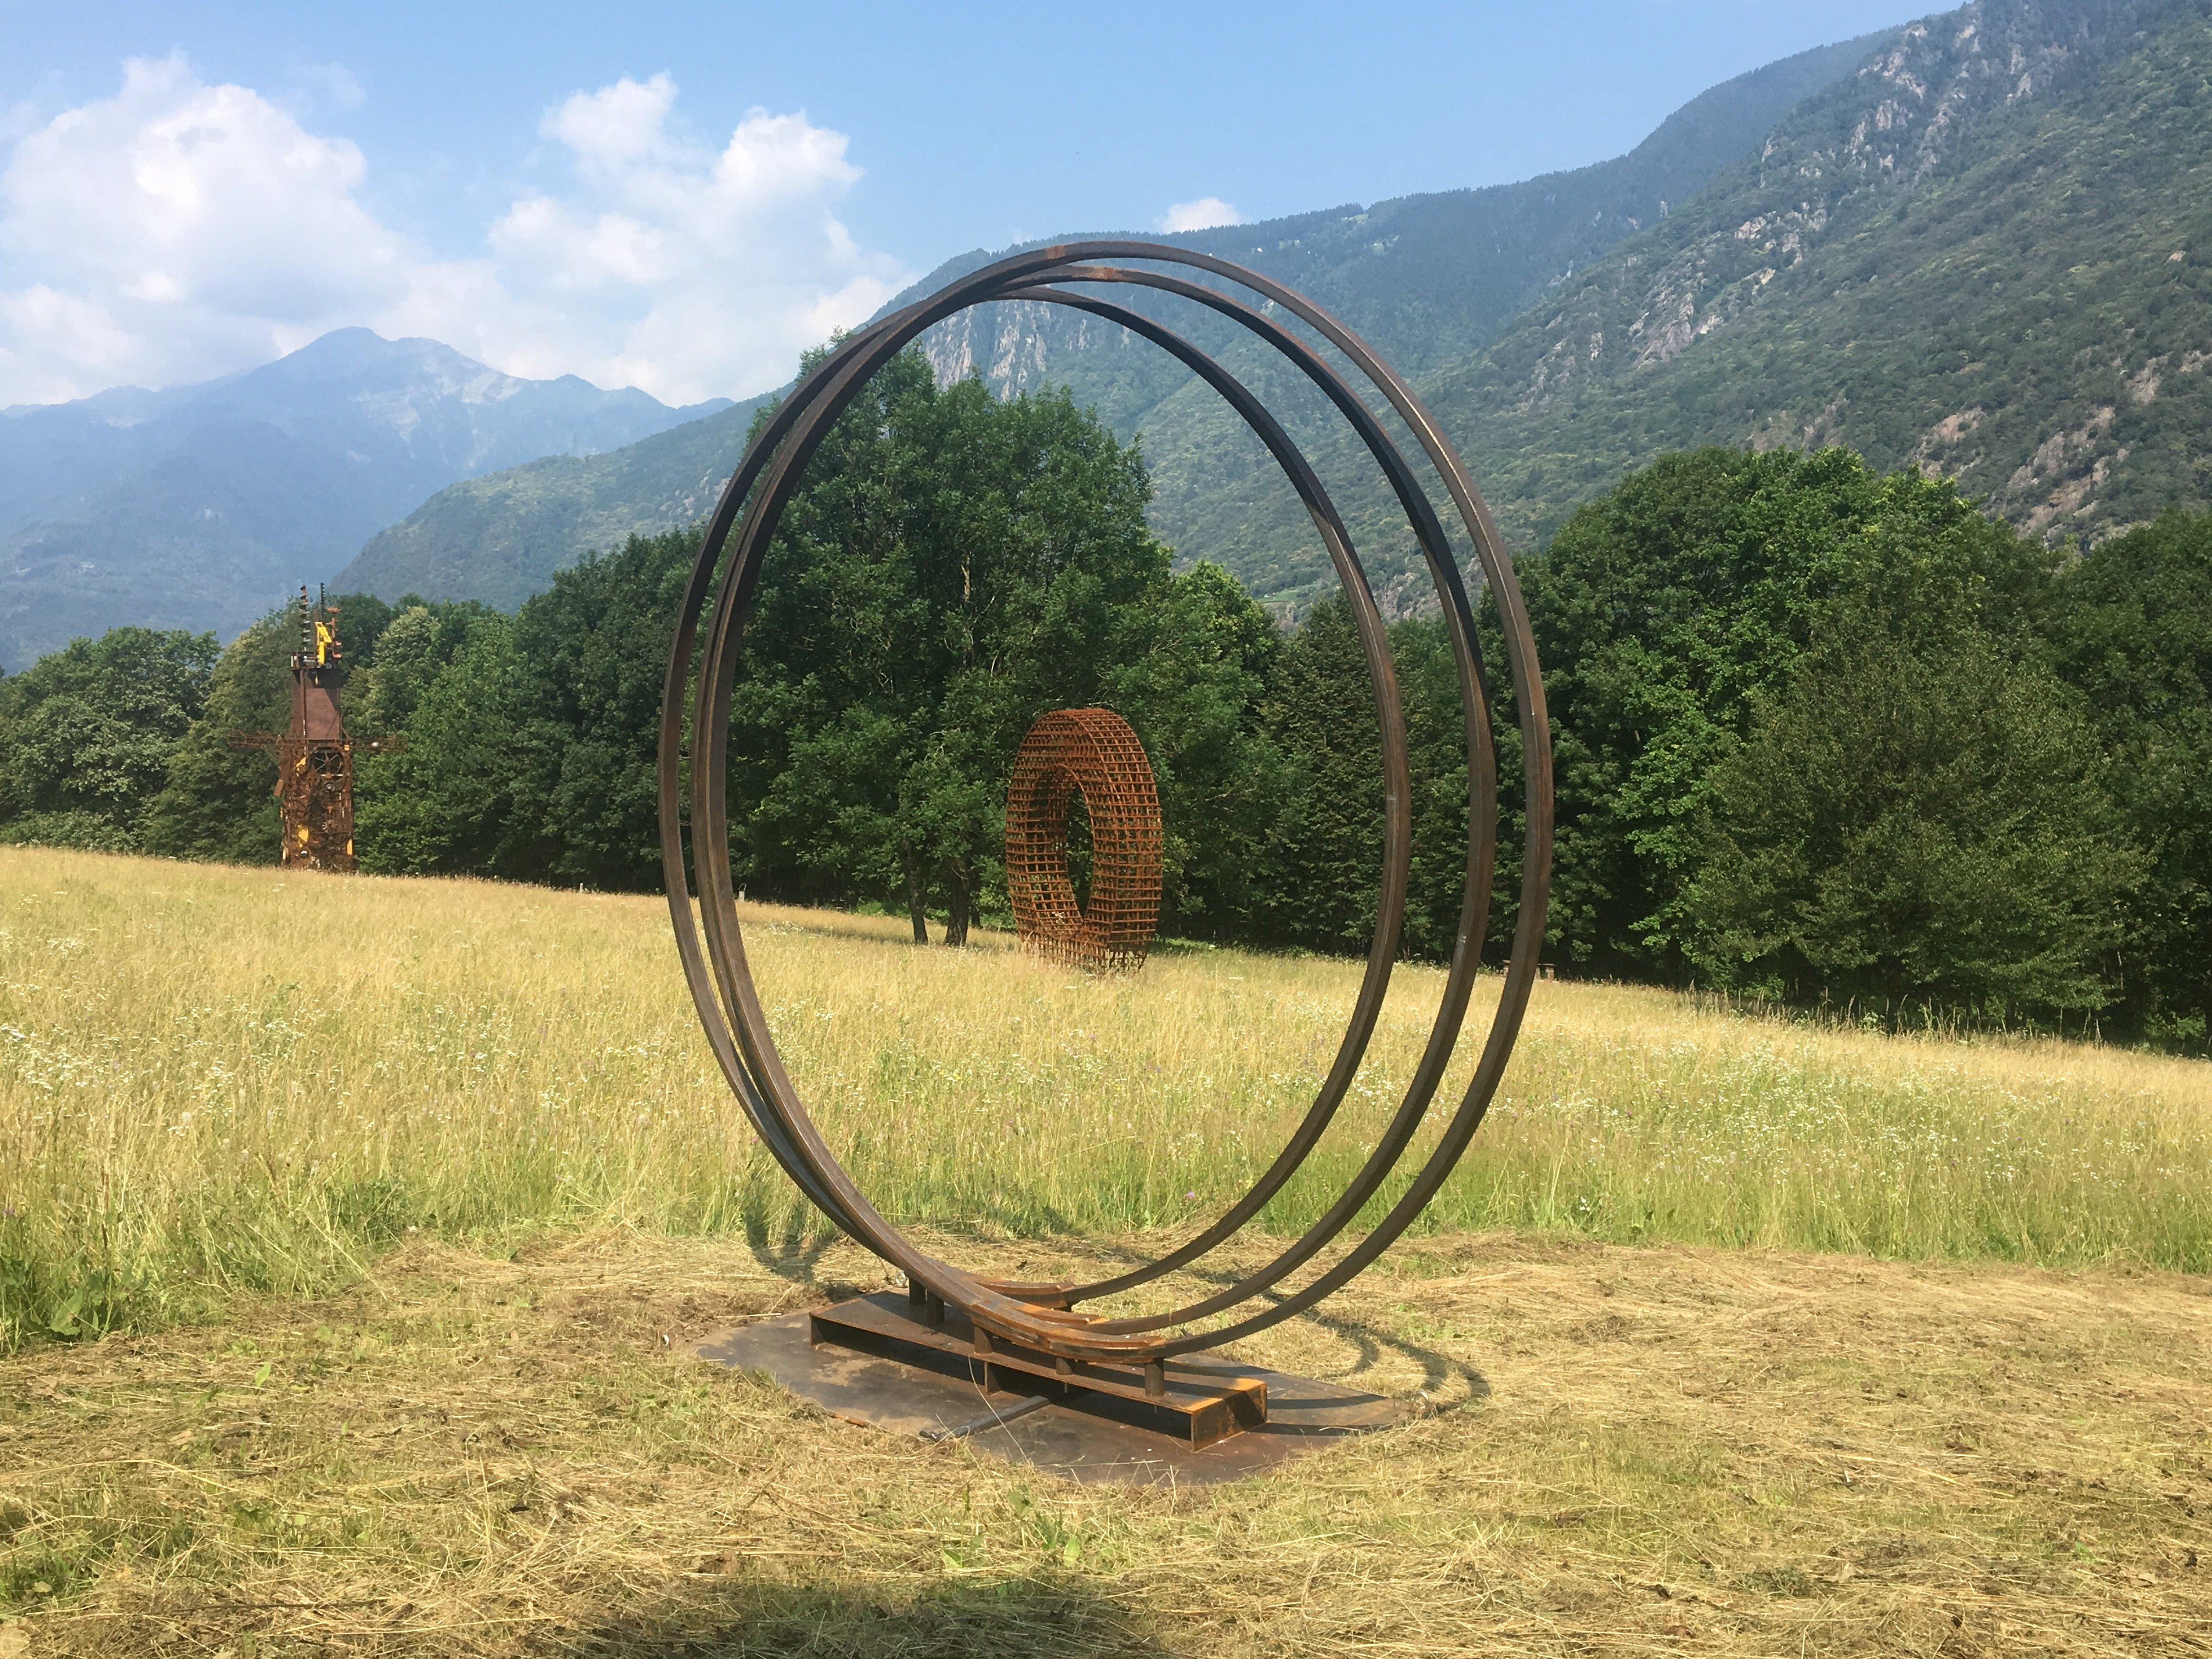 Harry Schaffer, Three Rings, Roveredo 2019, photo: Harry Schaffer